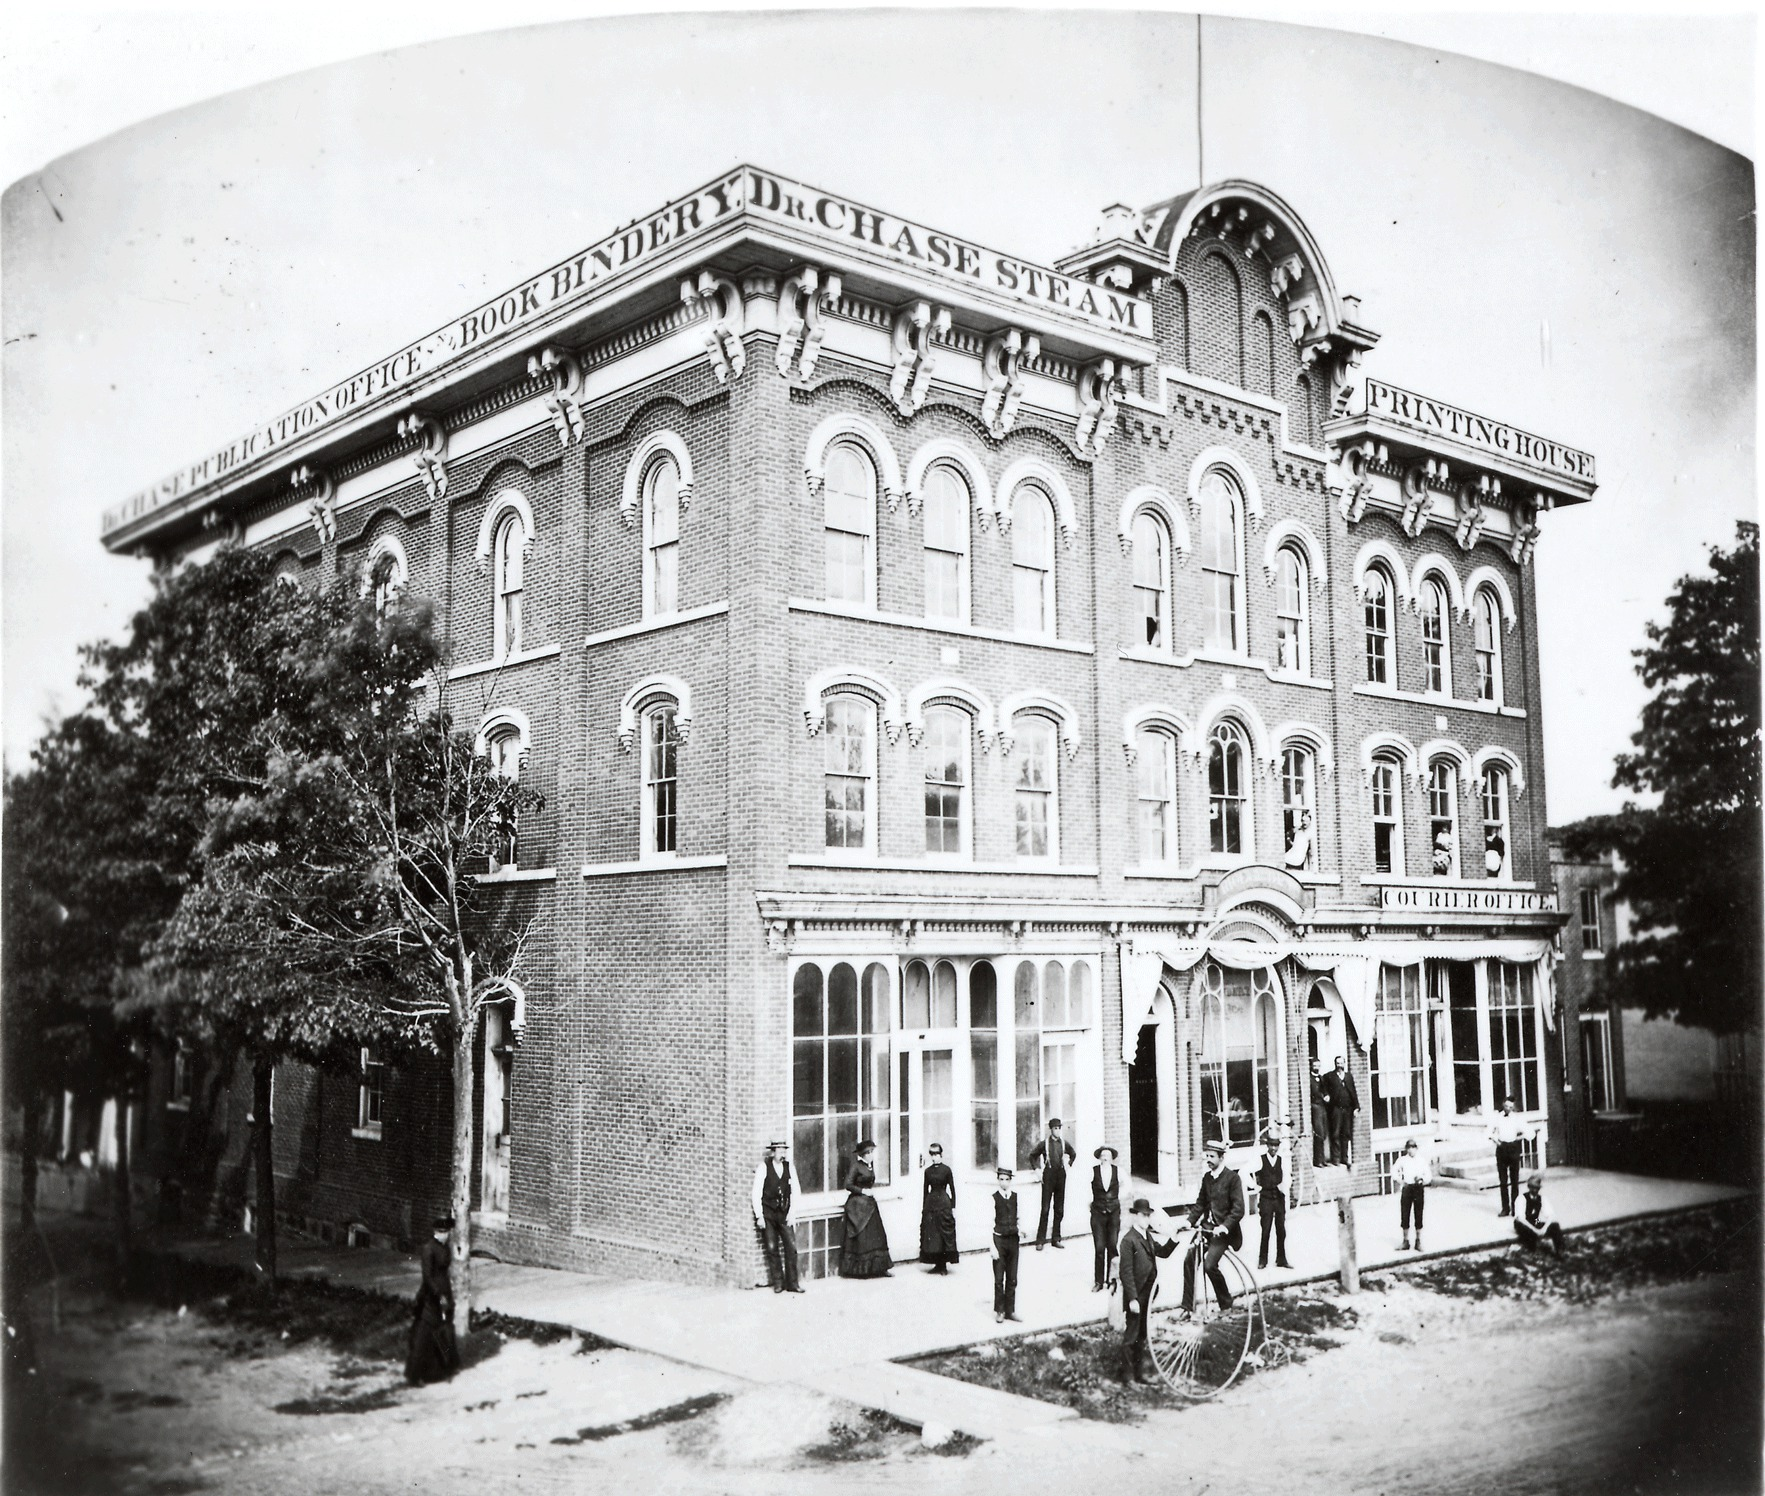 Dr. Chase's Steam Printing House, 1864/1868 image